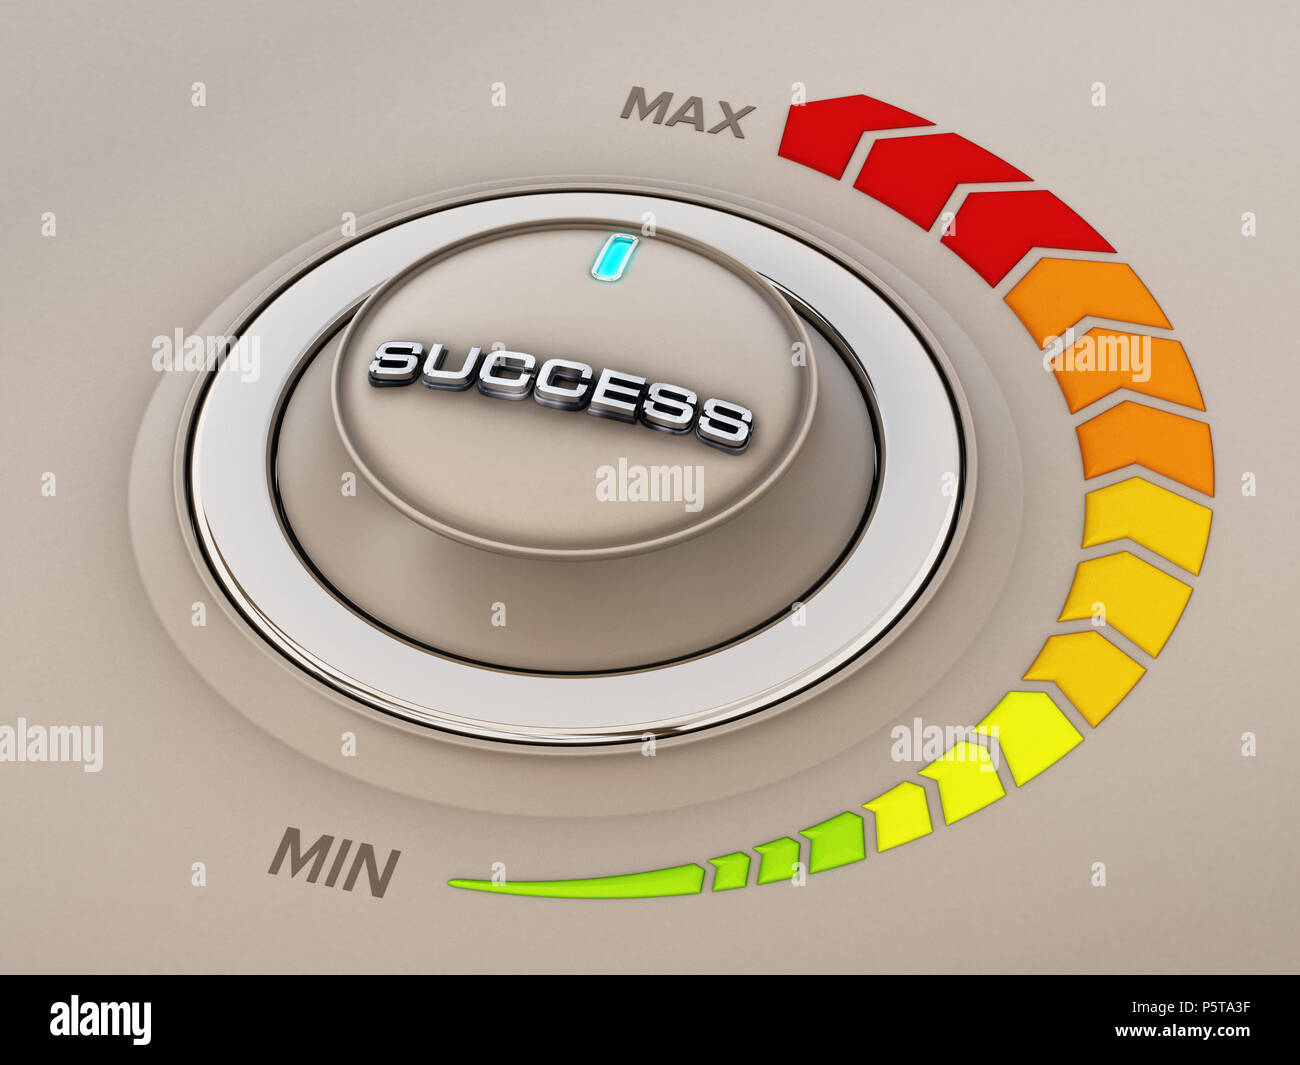 Vintage style control knob dial with success word. 3D illustration. - Stock Image